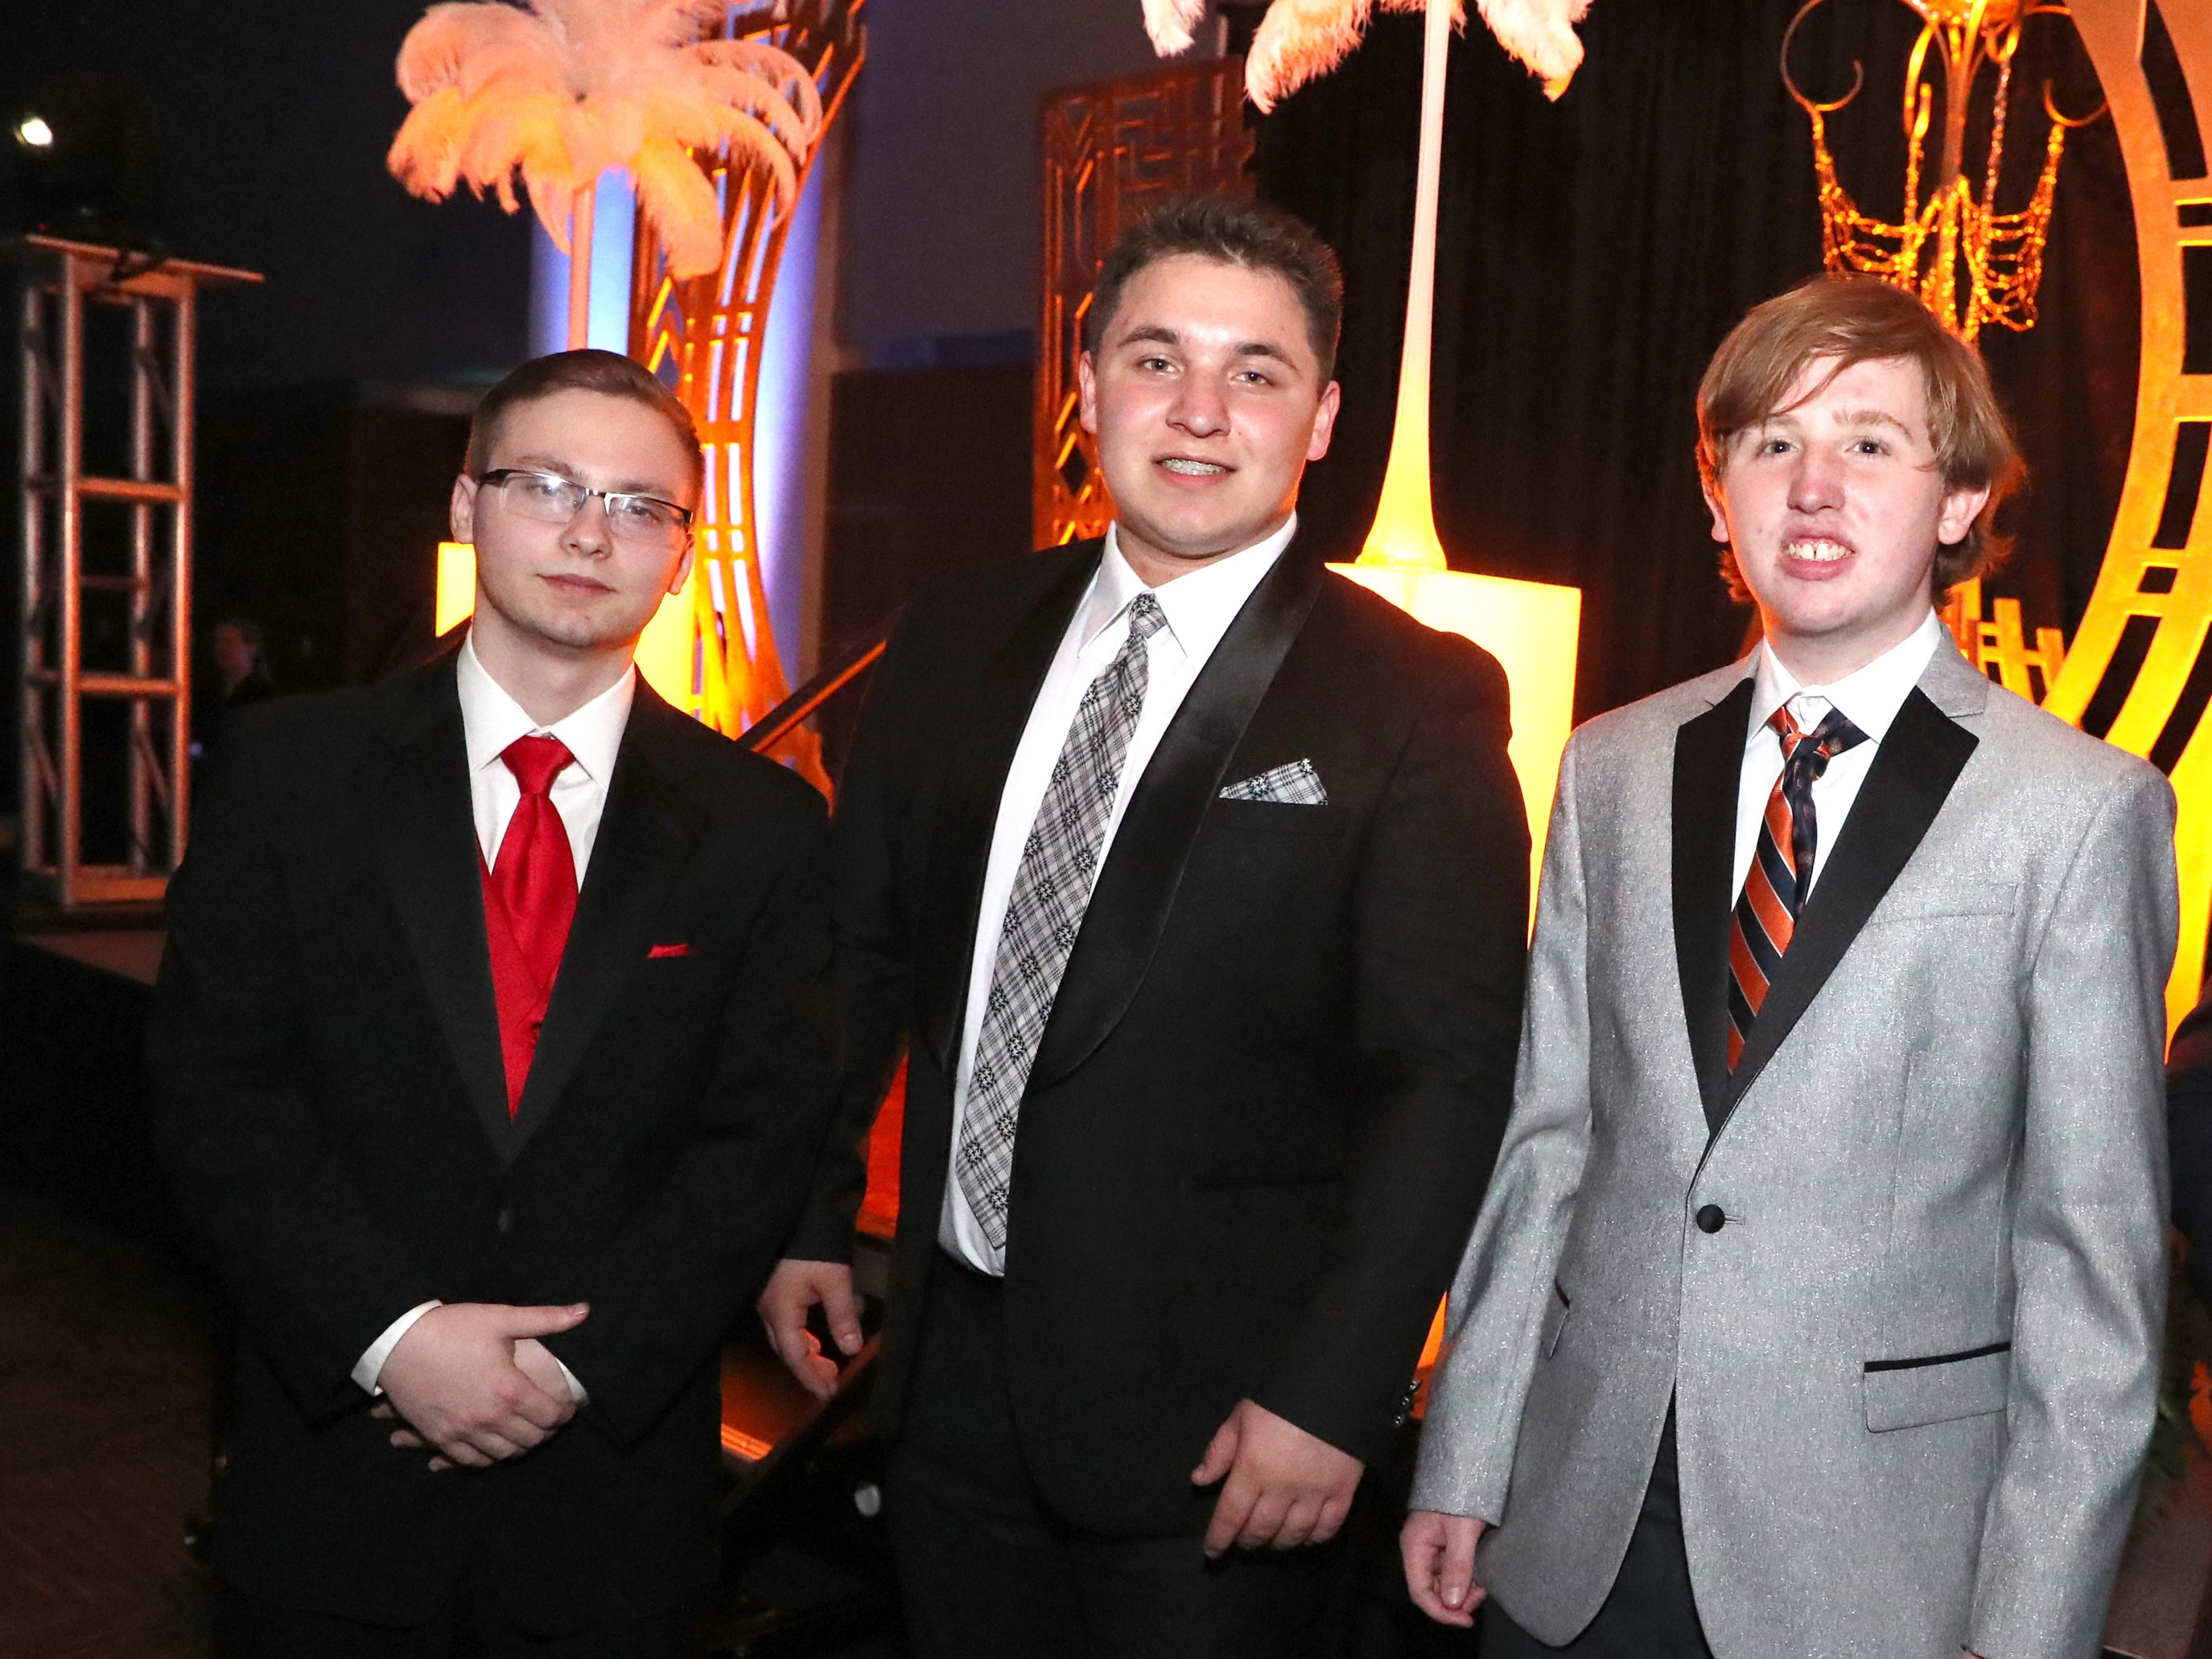 Eric Taylor, left, Alejandro Paez, center and Benjamin Barnes, right at Blackman's prom held on Friday April 12, 2019, at MTSU.